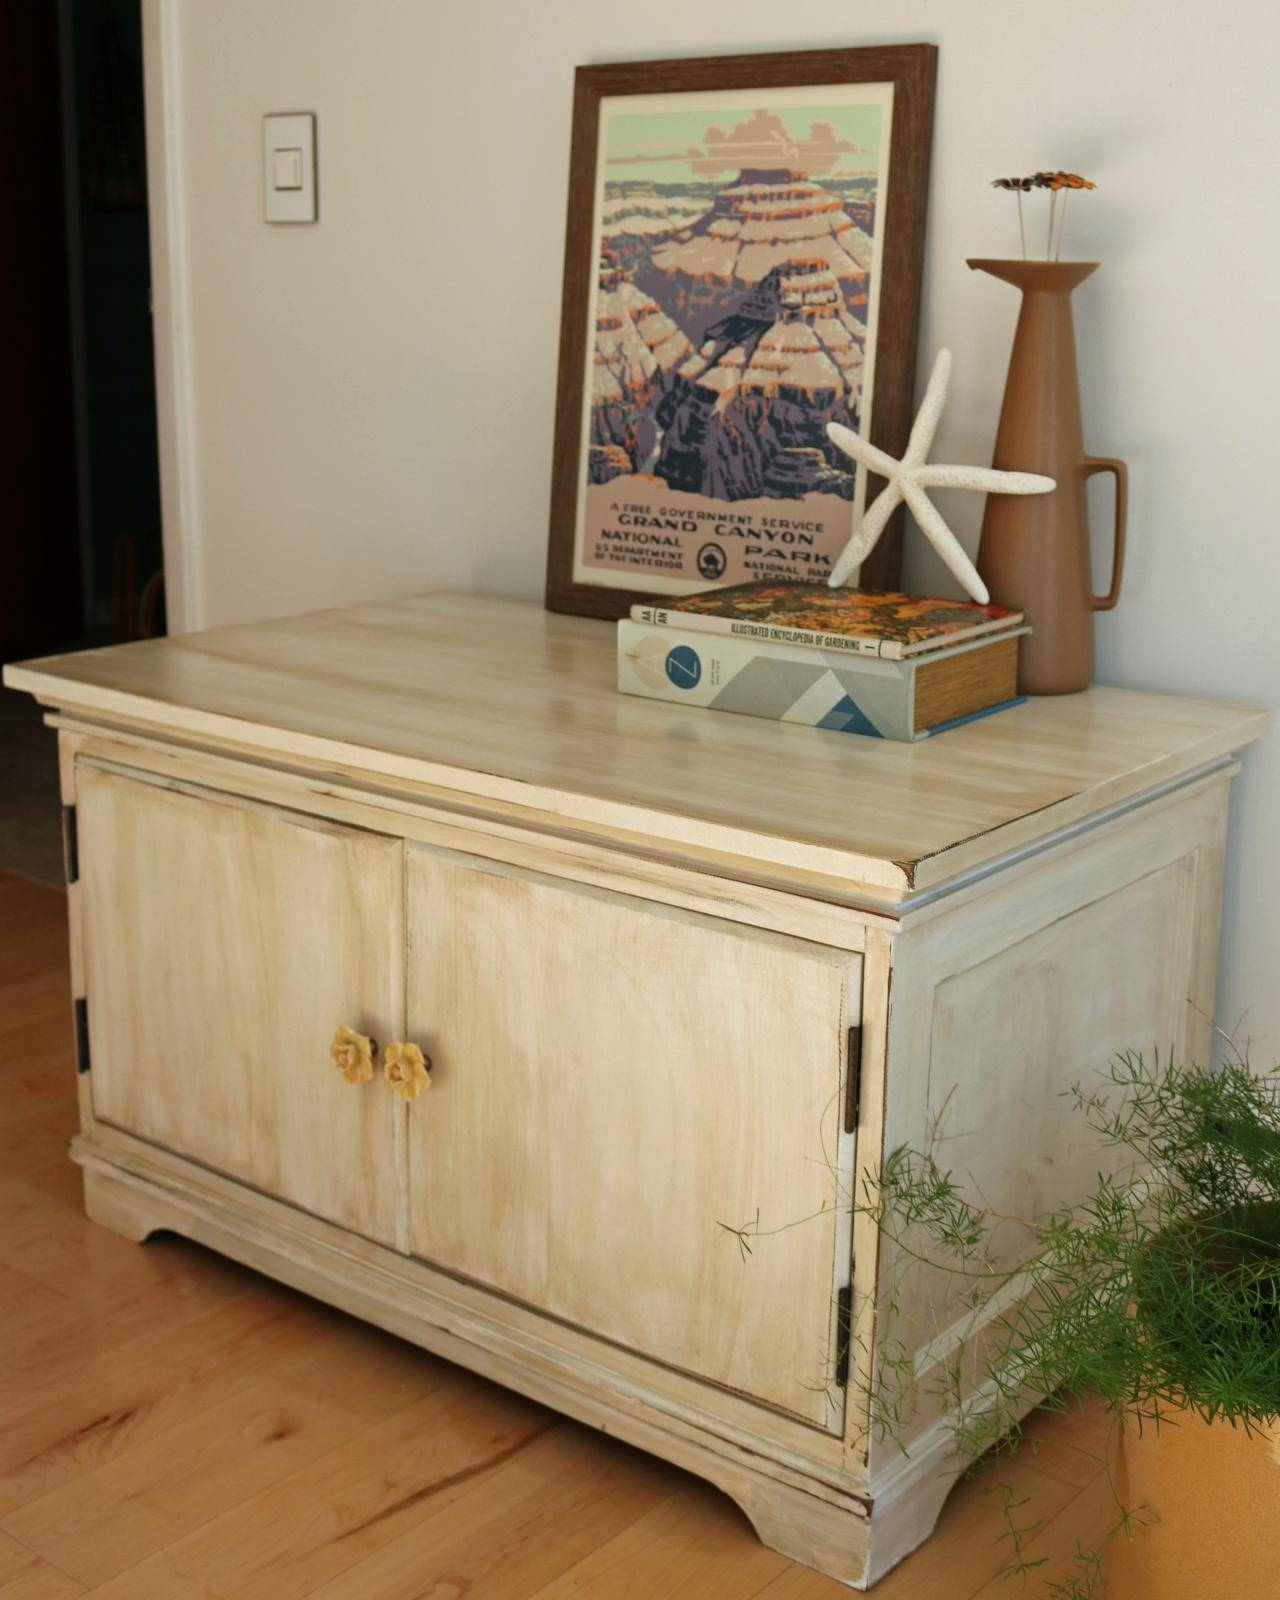 How To Distress Furniture | How Tos | Diy Within Distressed Wood Sideboards (View 15 of 15)